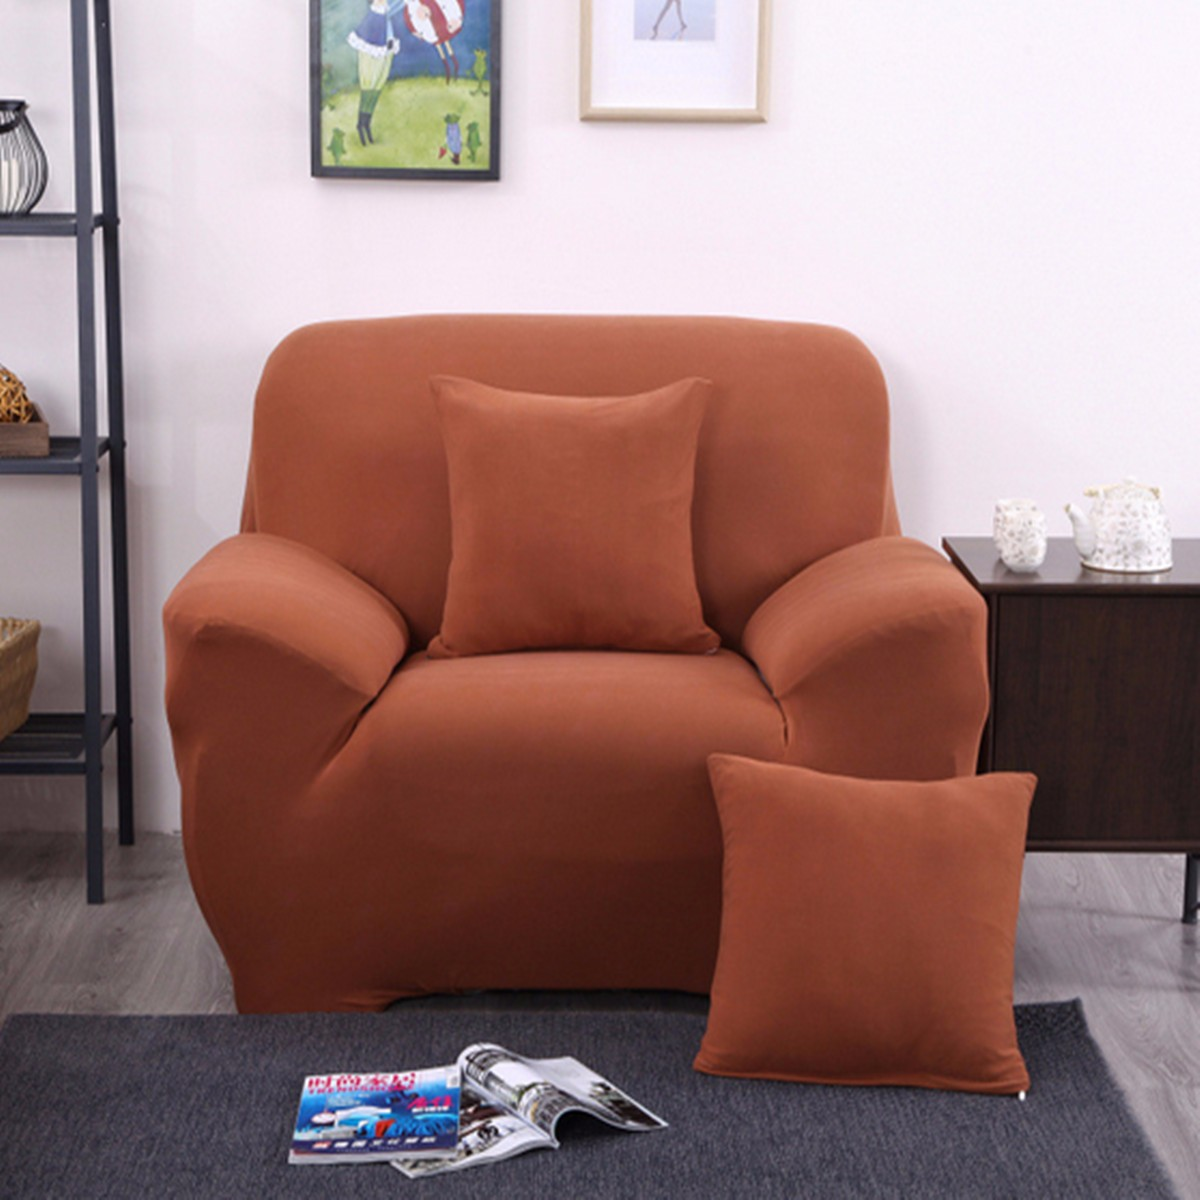 Online Get Cheap Couch Covers for Pets Aliexpresscom Alibaba Group